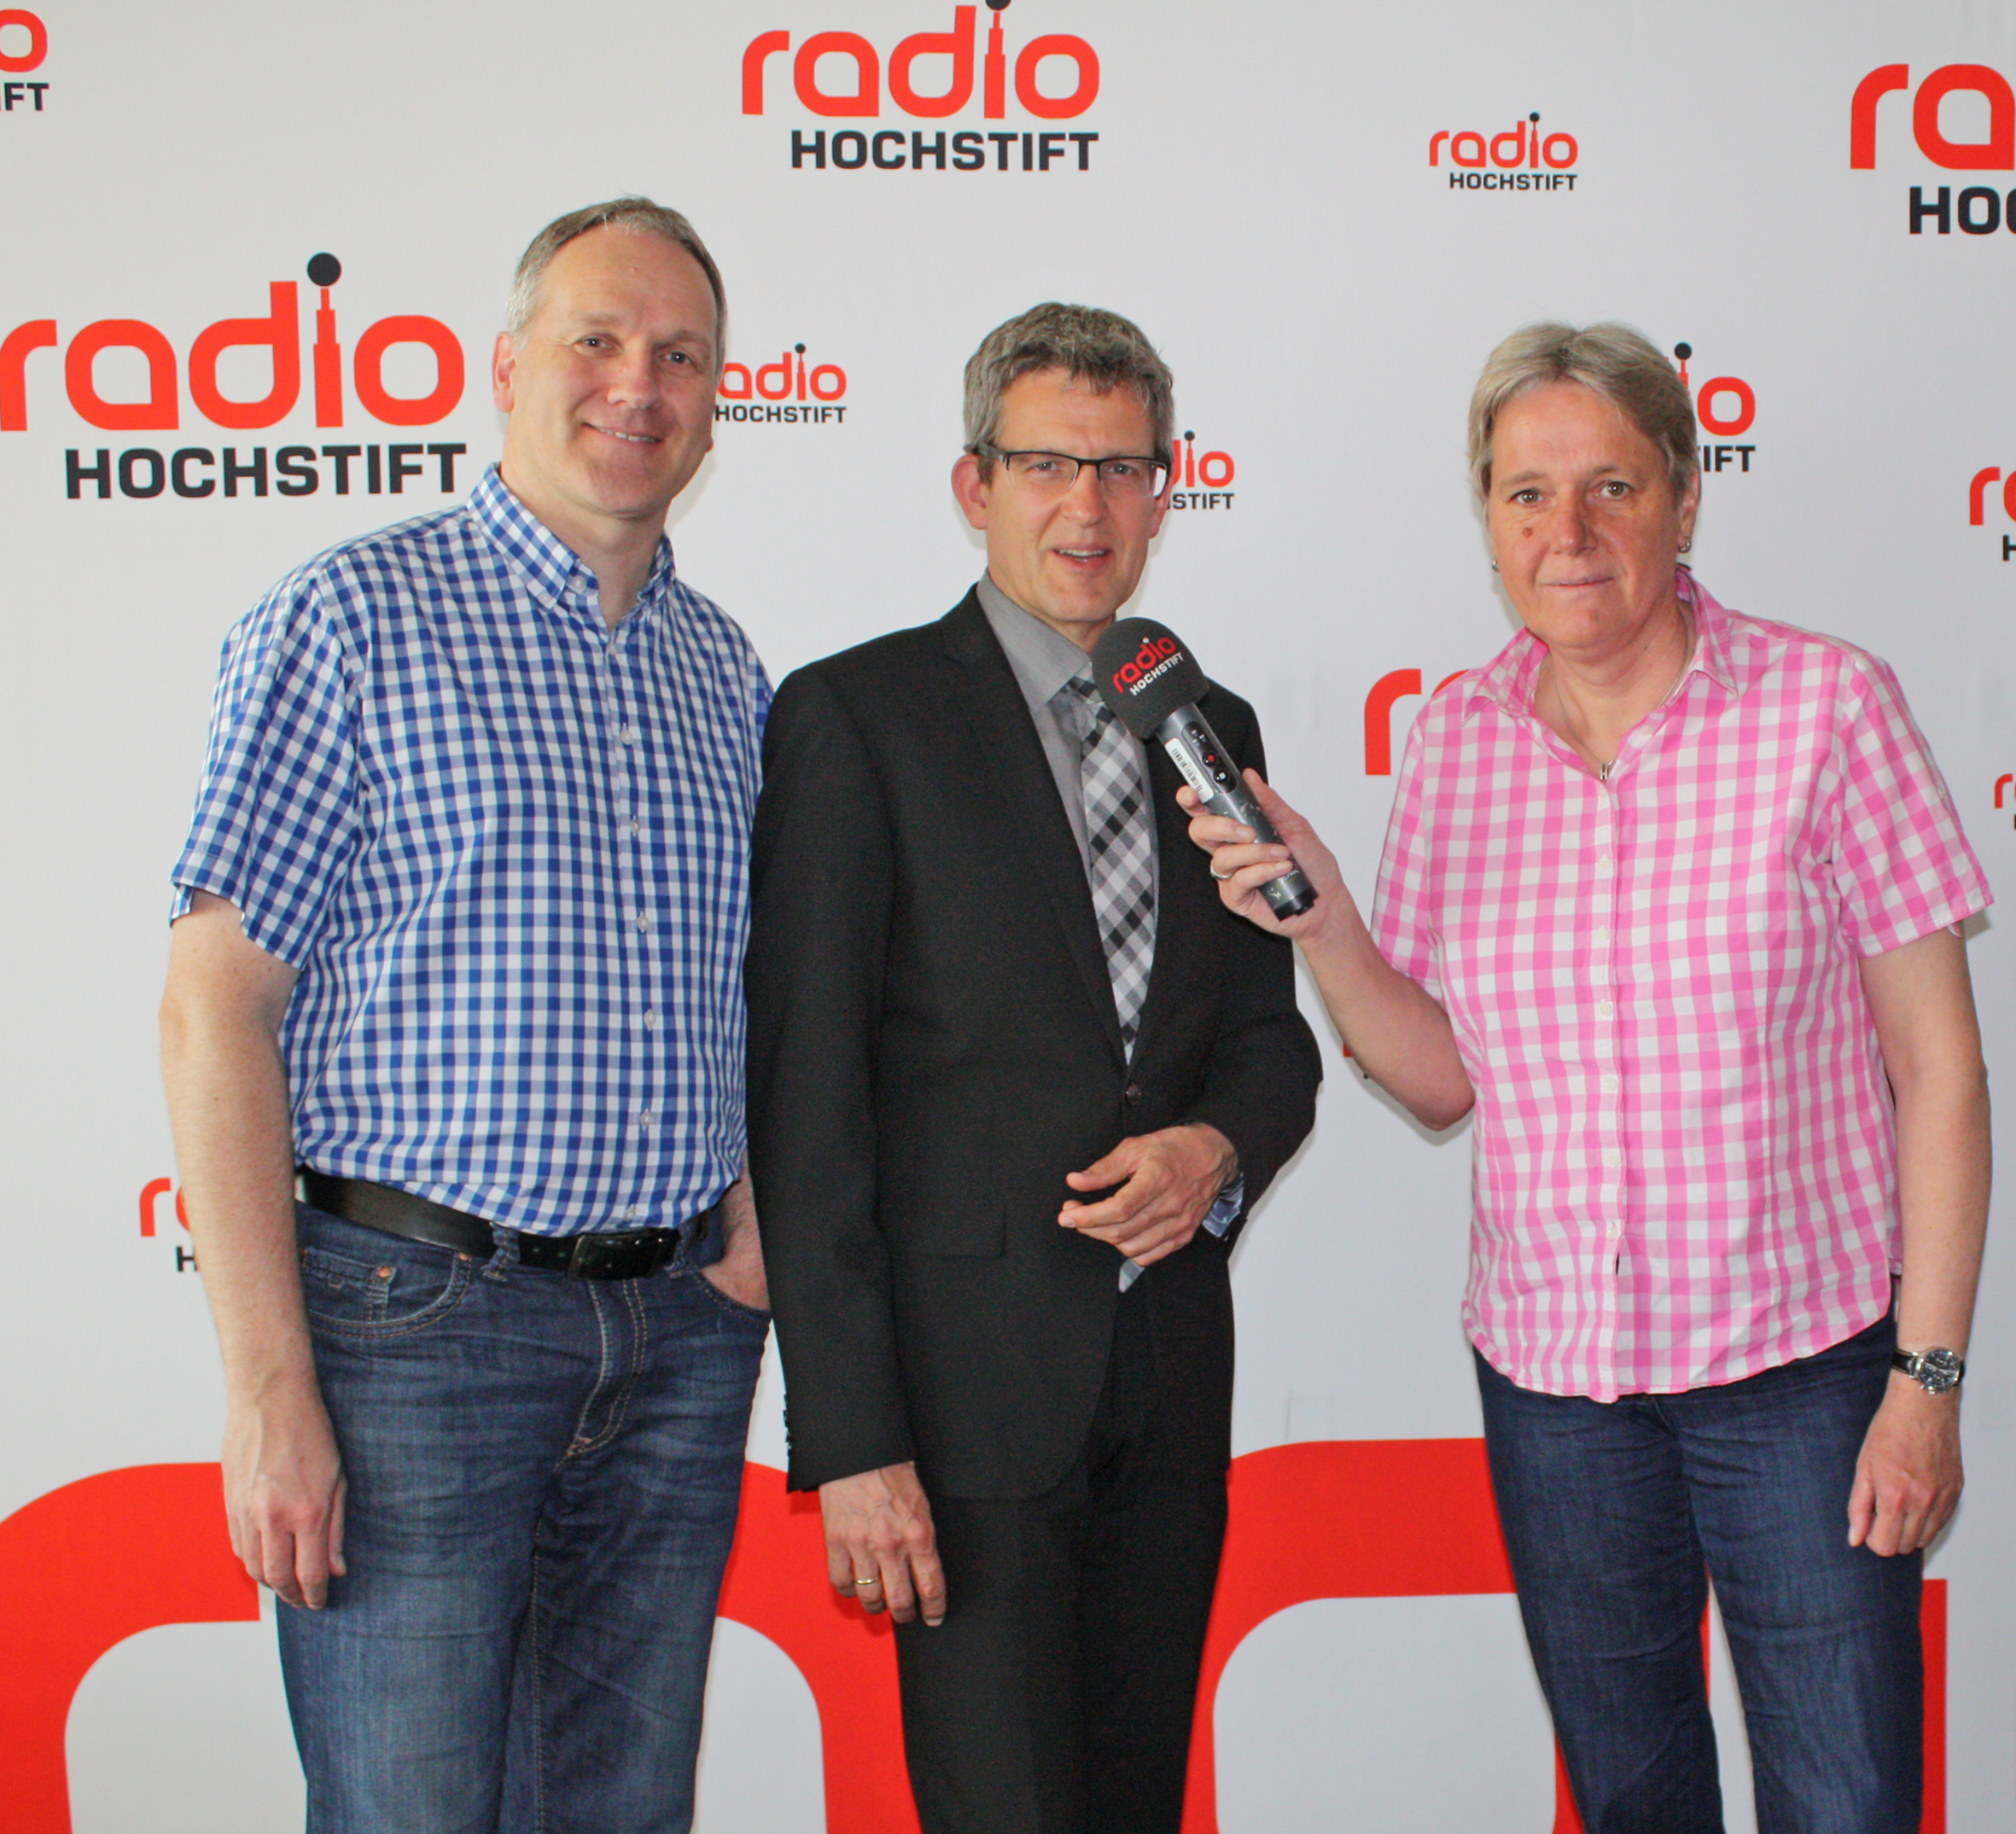 volker neuhoff im gespr ch mit radio hochstift evangelischer kirchenkreis paderborn. Black Bedroom Furniture Sets. Home Design Ideas